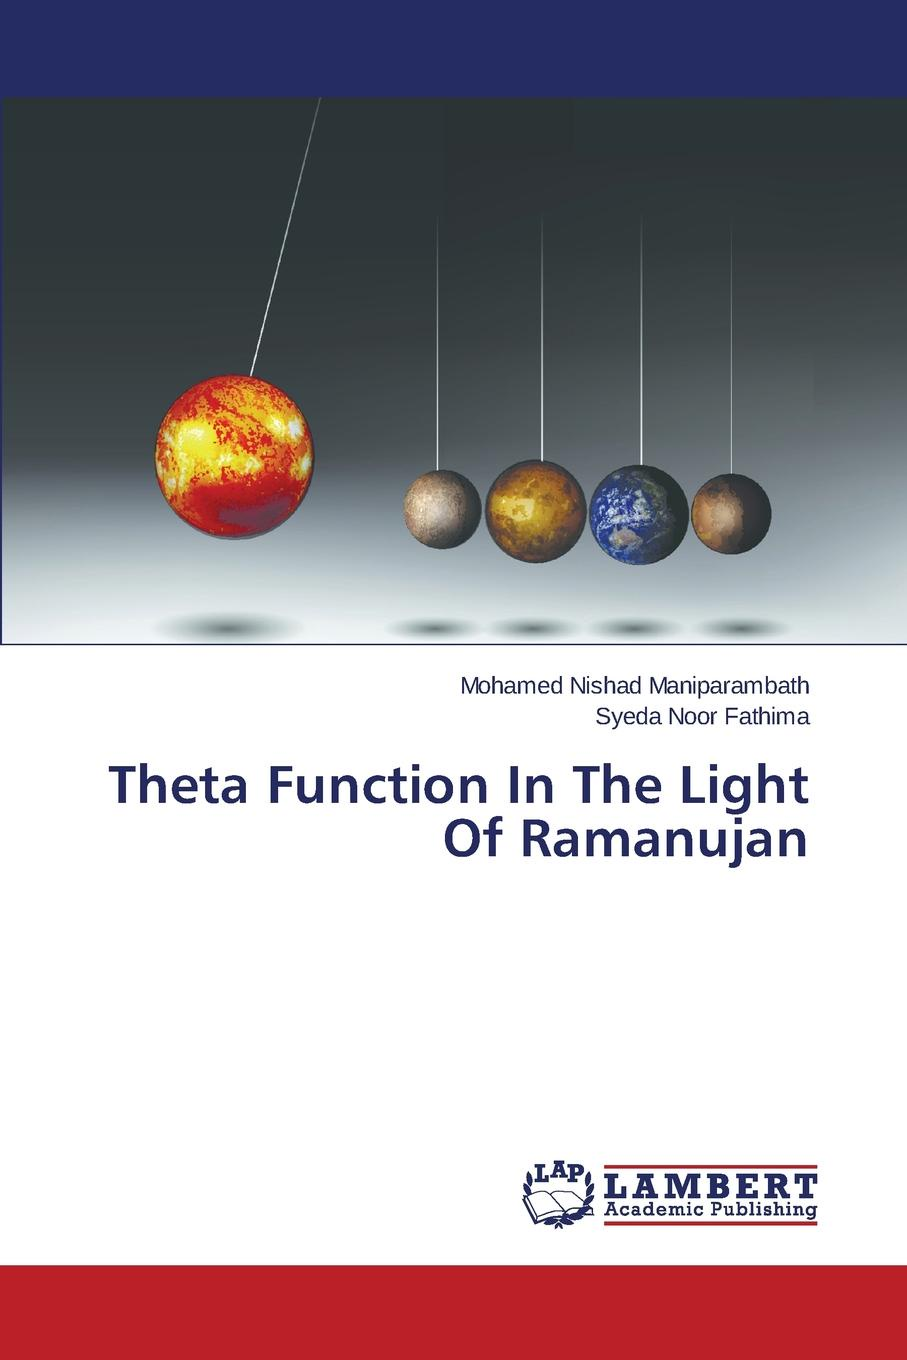 Maniparambath Mohamed Nishad, Fathima Syeda Noor Theta Function In The Light Of Ramanujan цена